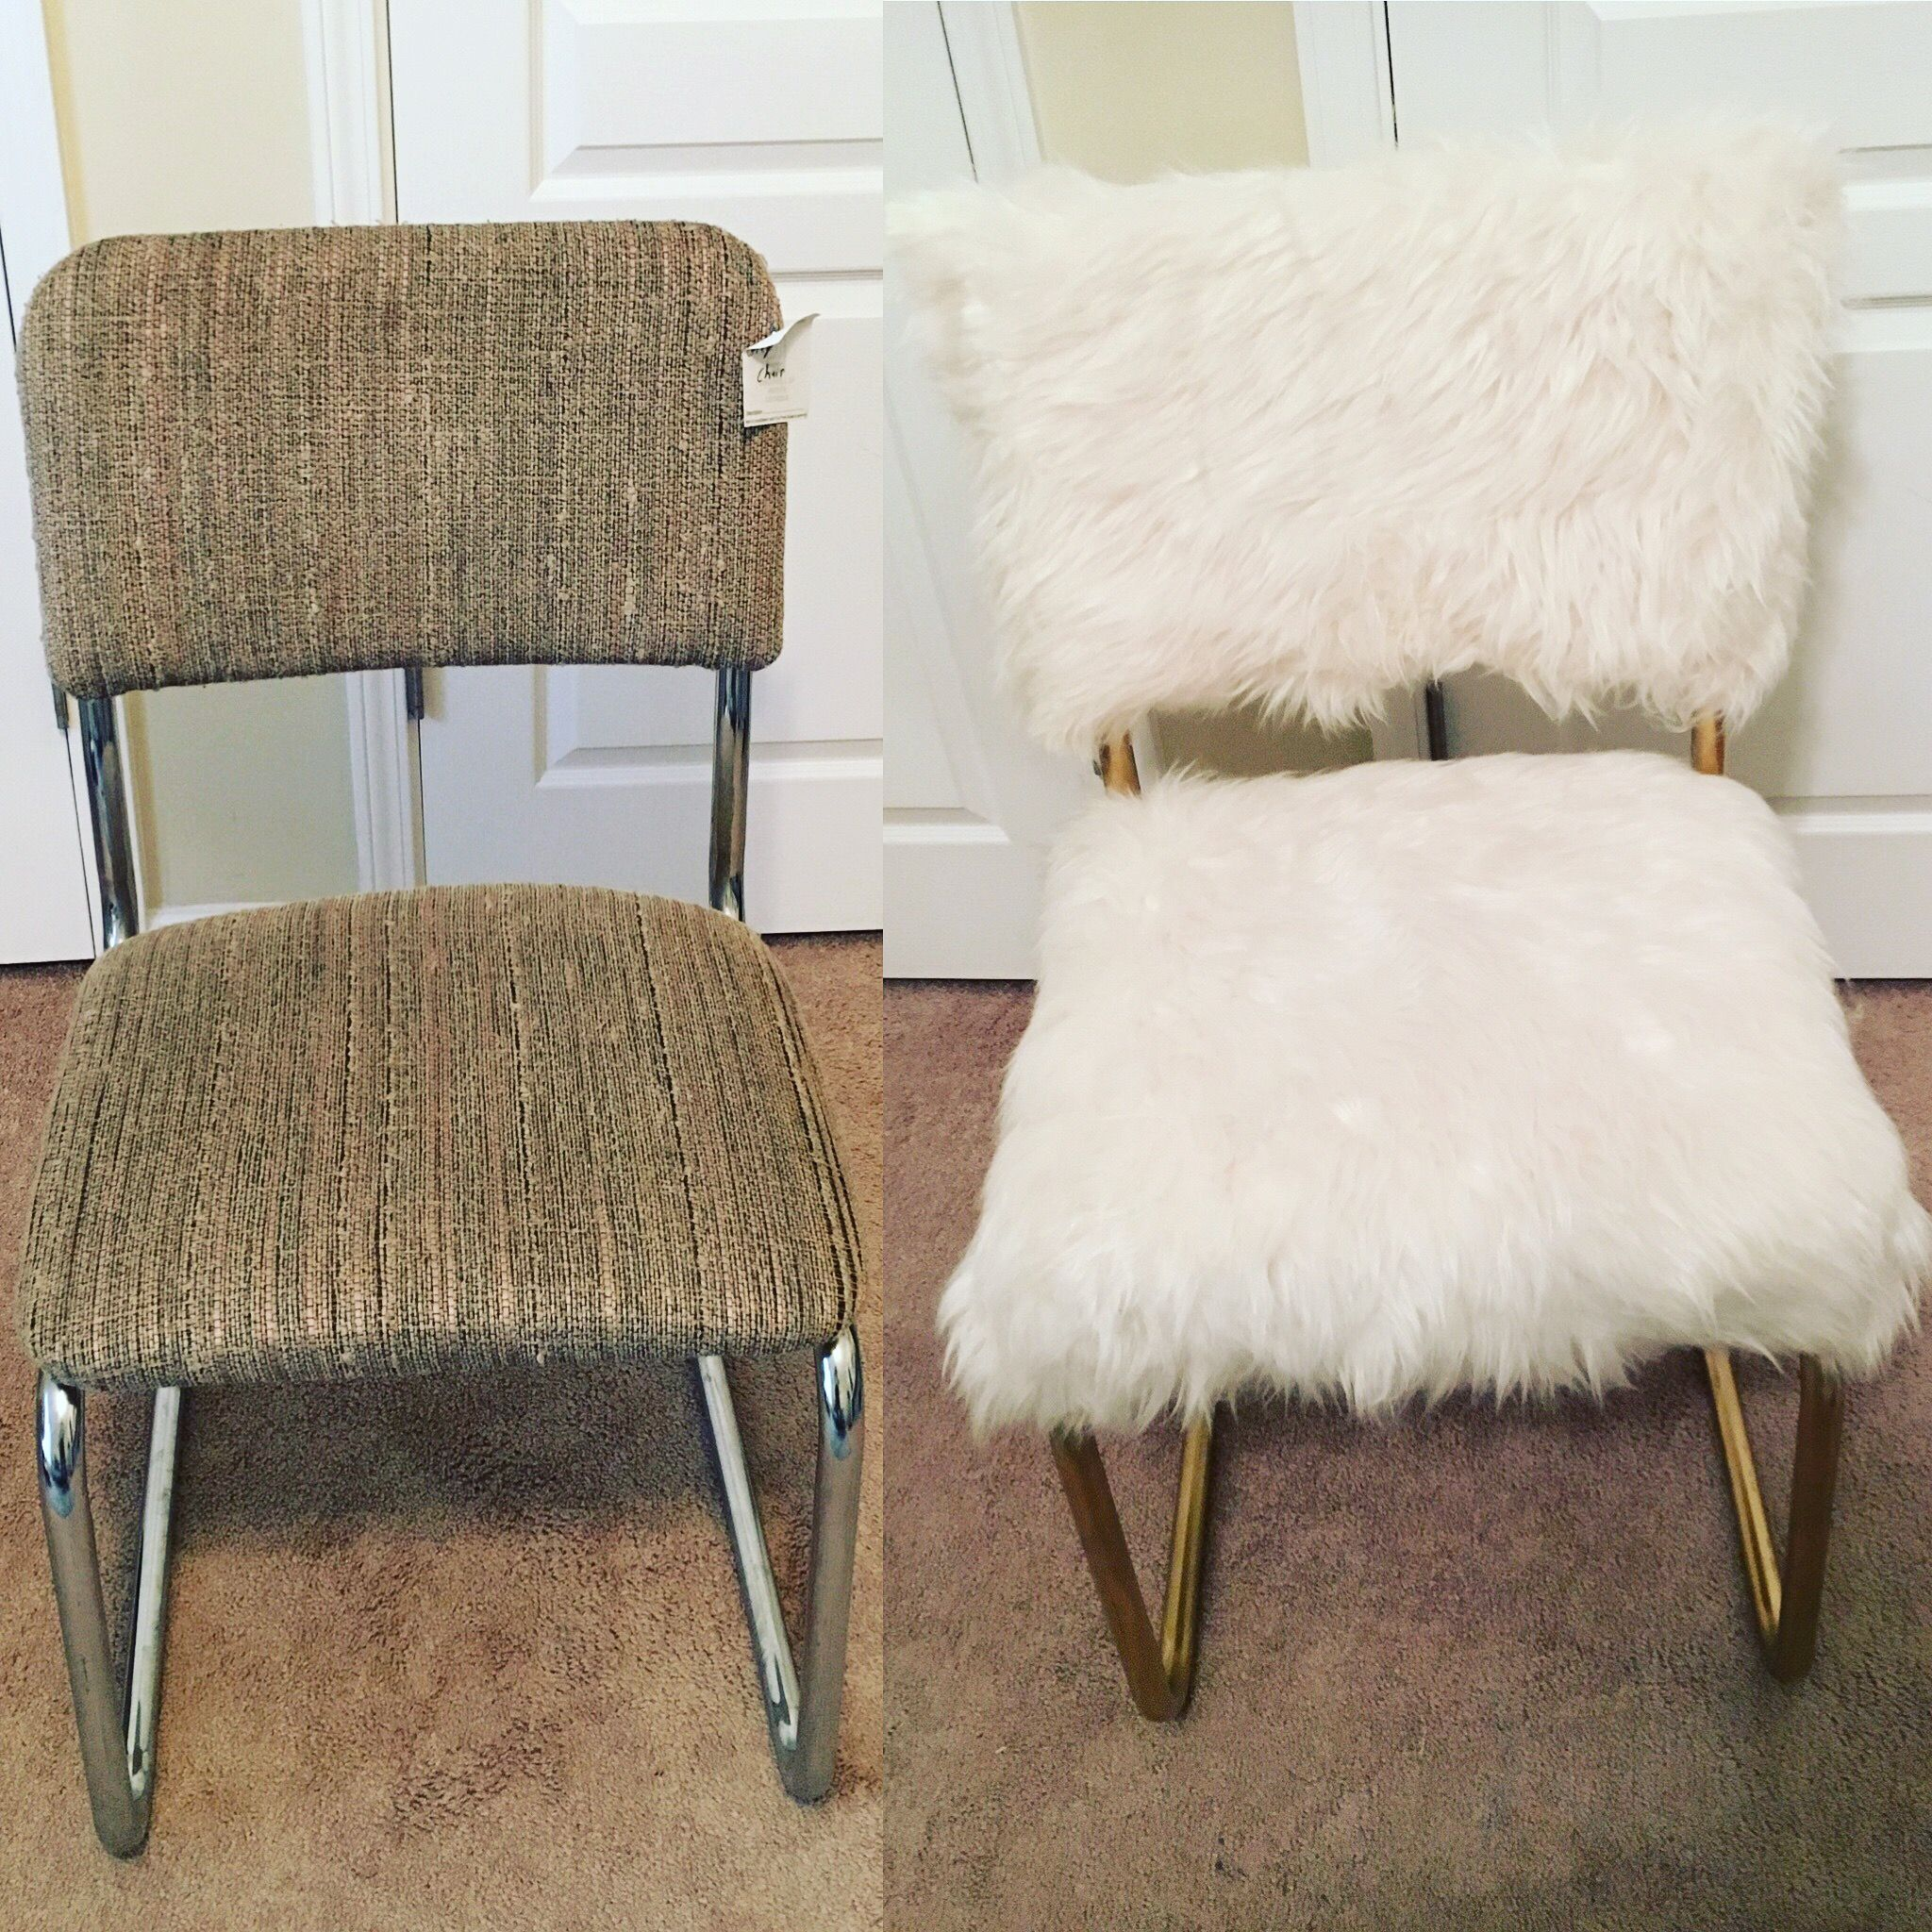 Shabby 4 Goodwill chair transformed into a chic white and